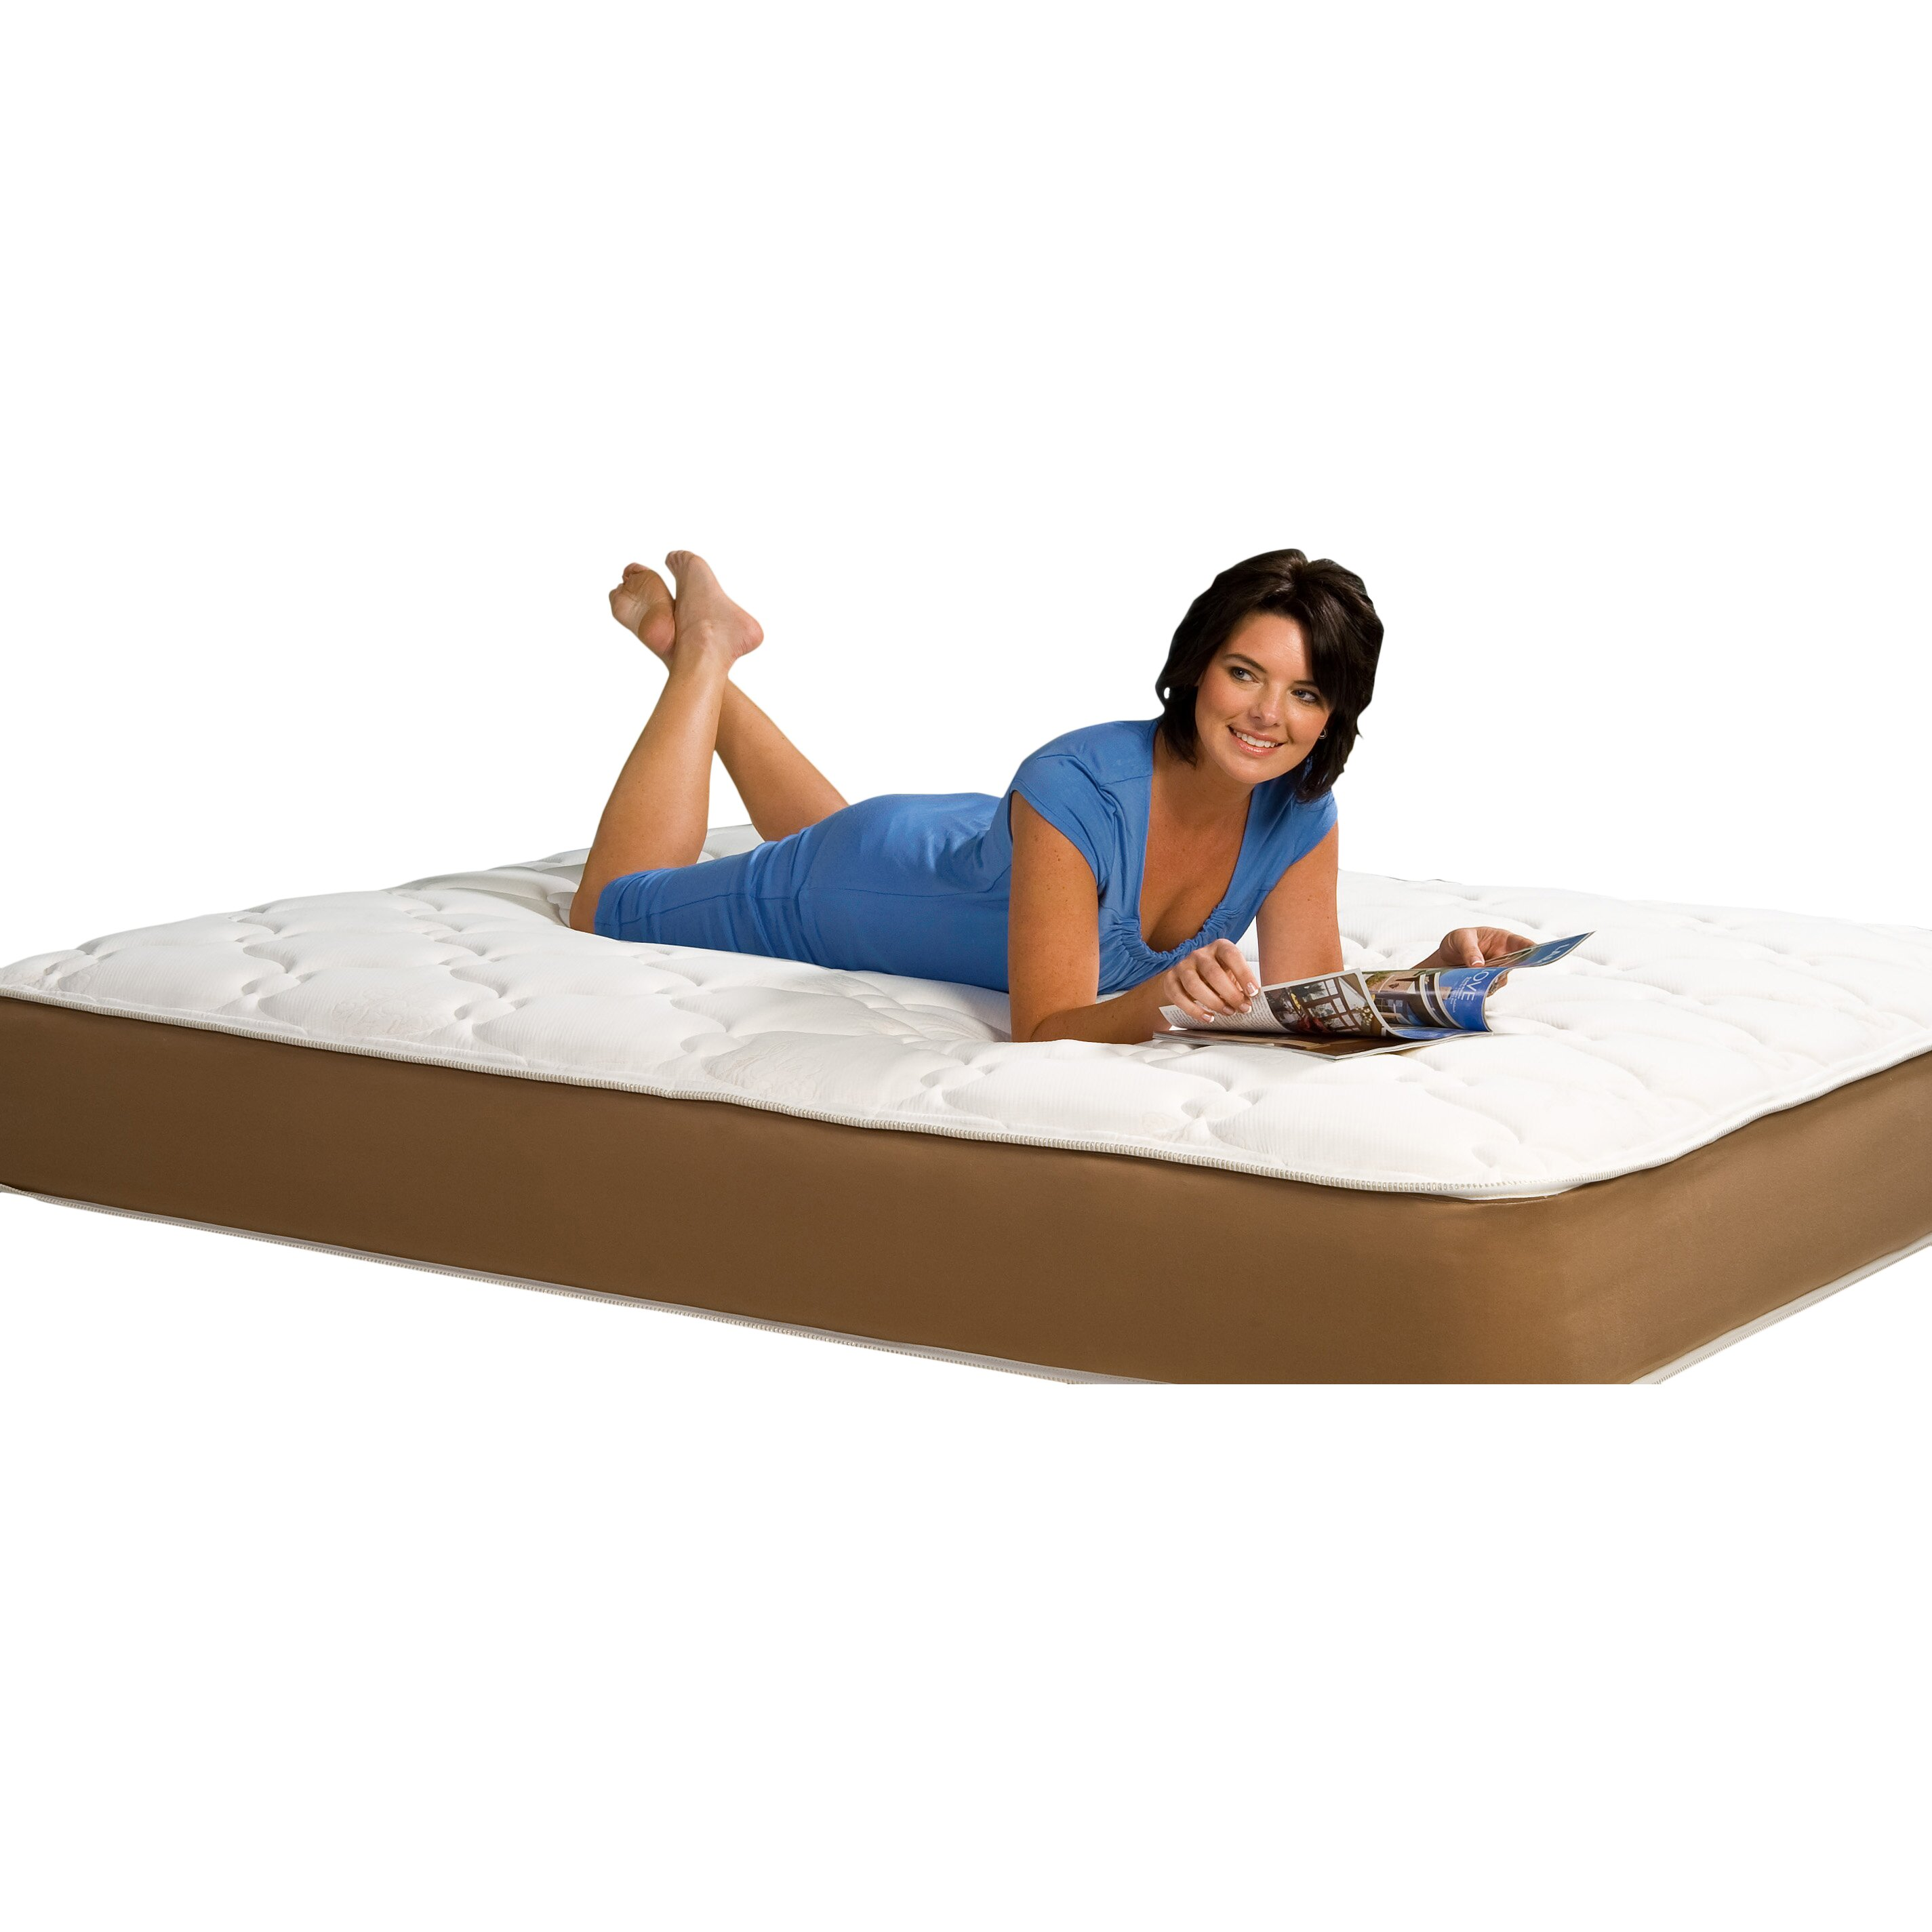 "Wolf Mattress Idream Moondance Supreme 10"" Plush Mattress"